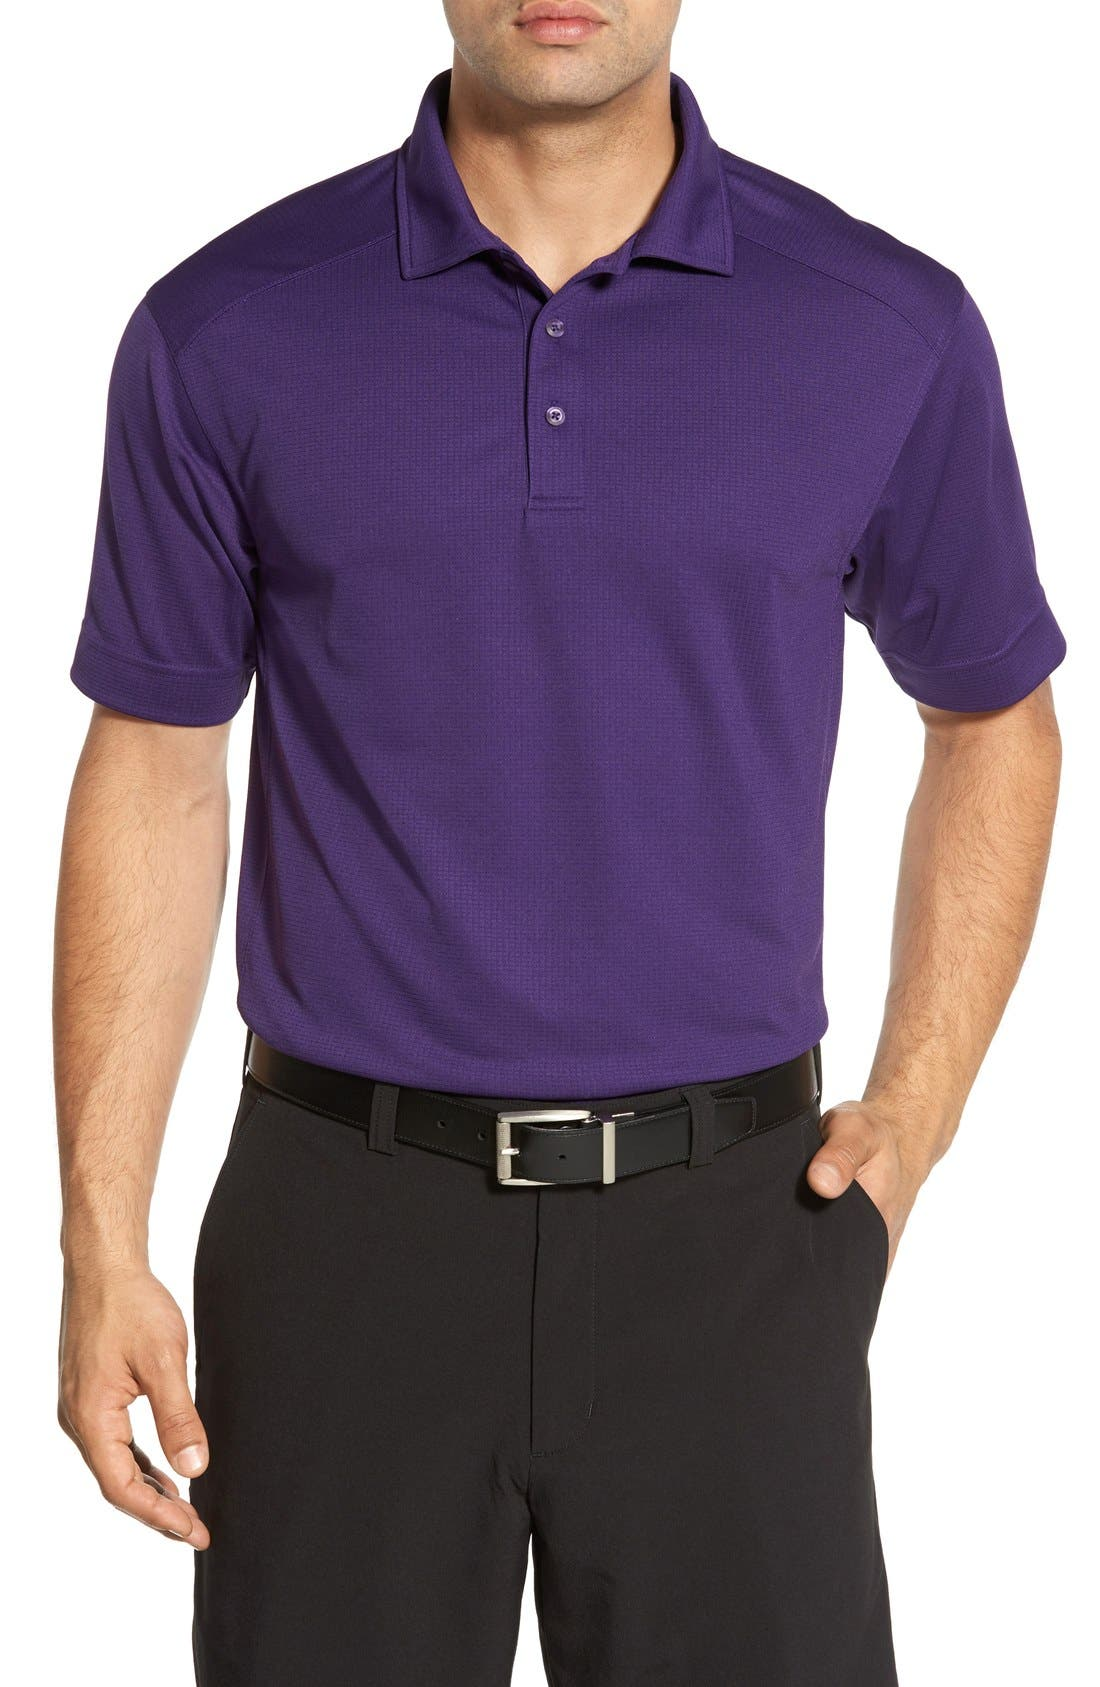 'Genre' DryTec Moisture Wicking Polo,                         Main,                         color, COLLEGE PURPLE